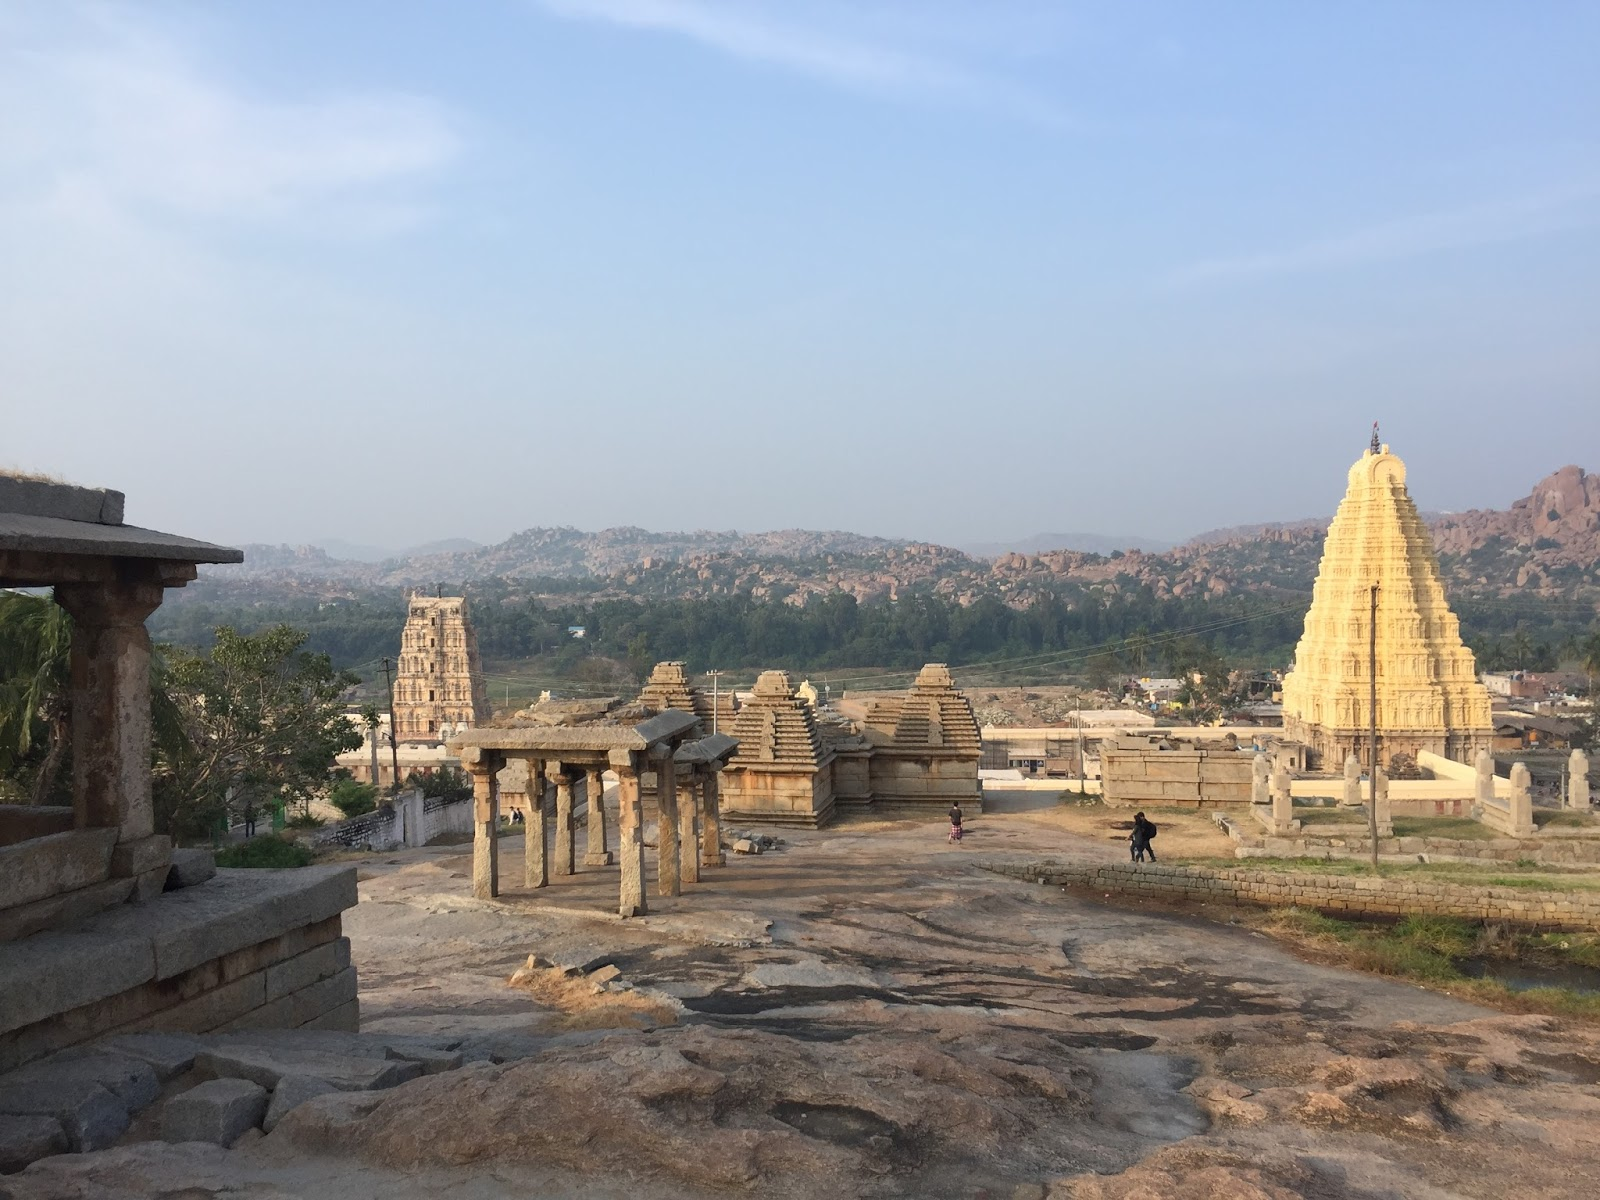 Hampi wandering in the golden era